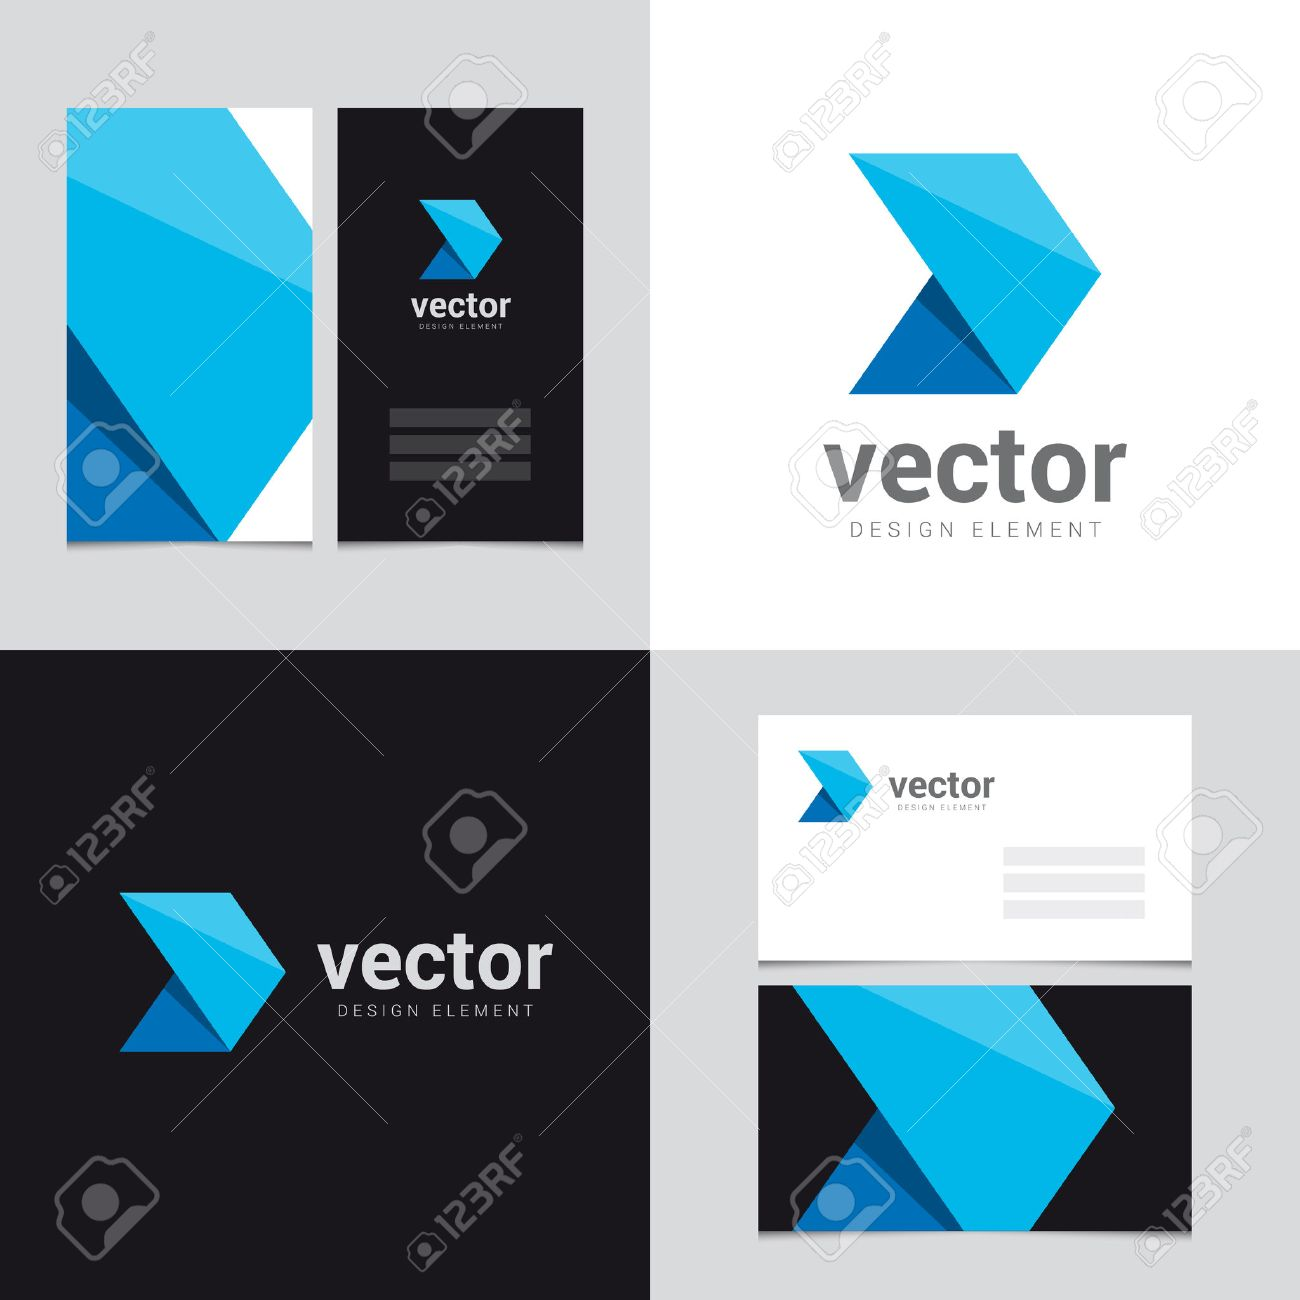 logo design element with two business cards template 23 vector